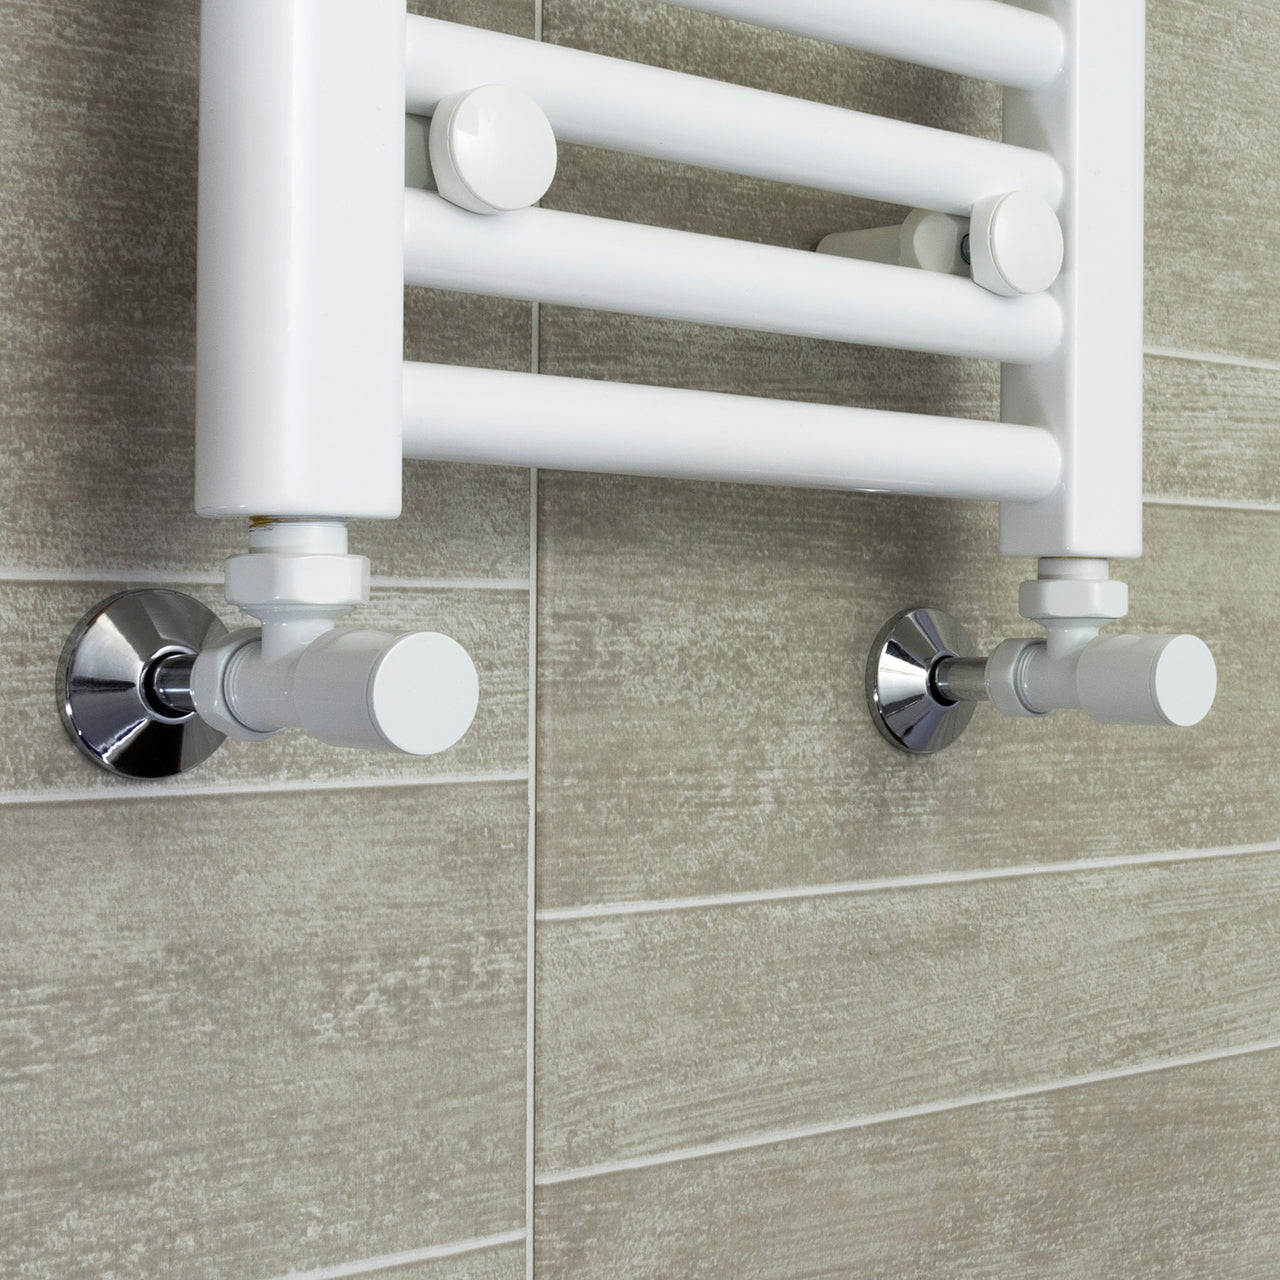 750mm Wide 1300mm High Flat White Heated Towel Rail Radiator HTR,With Angled Valve